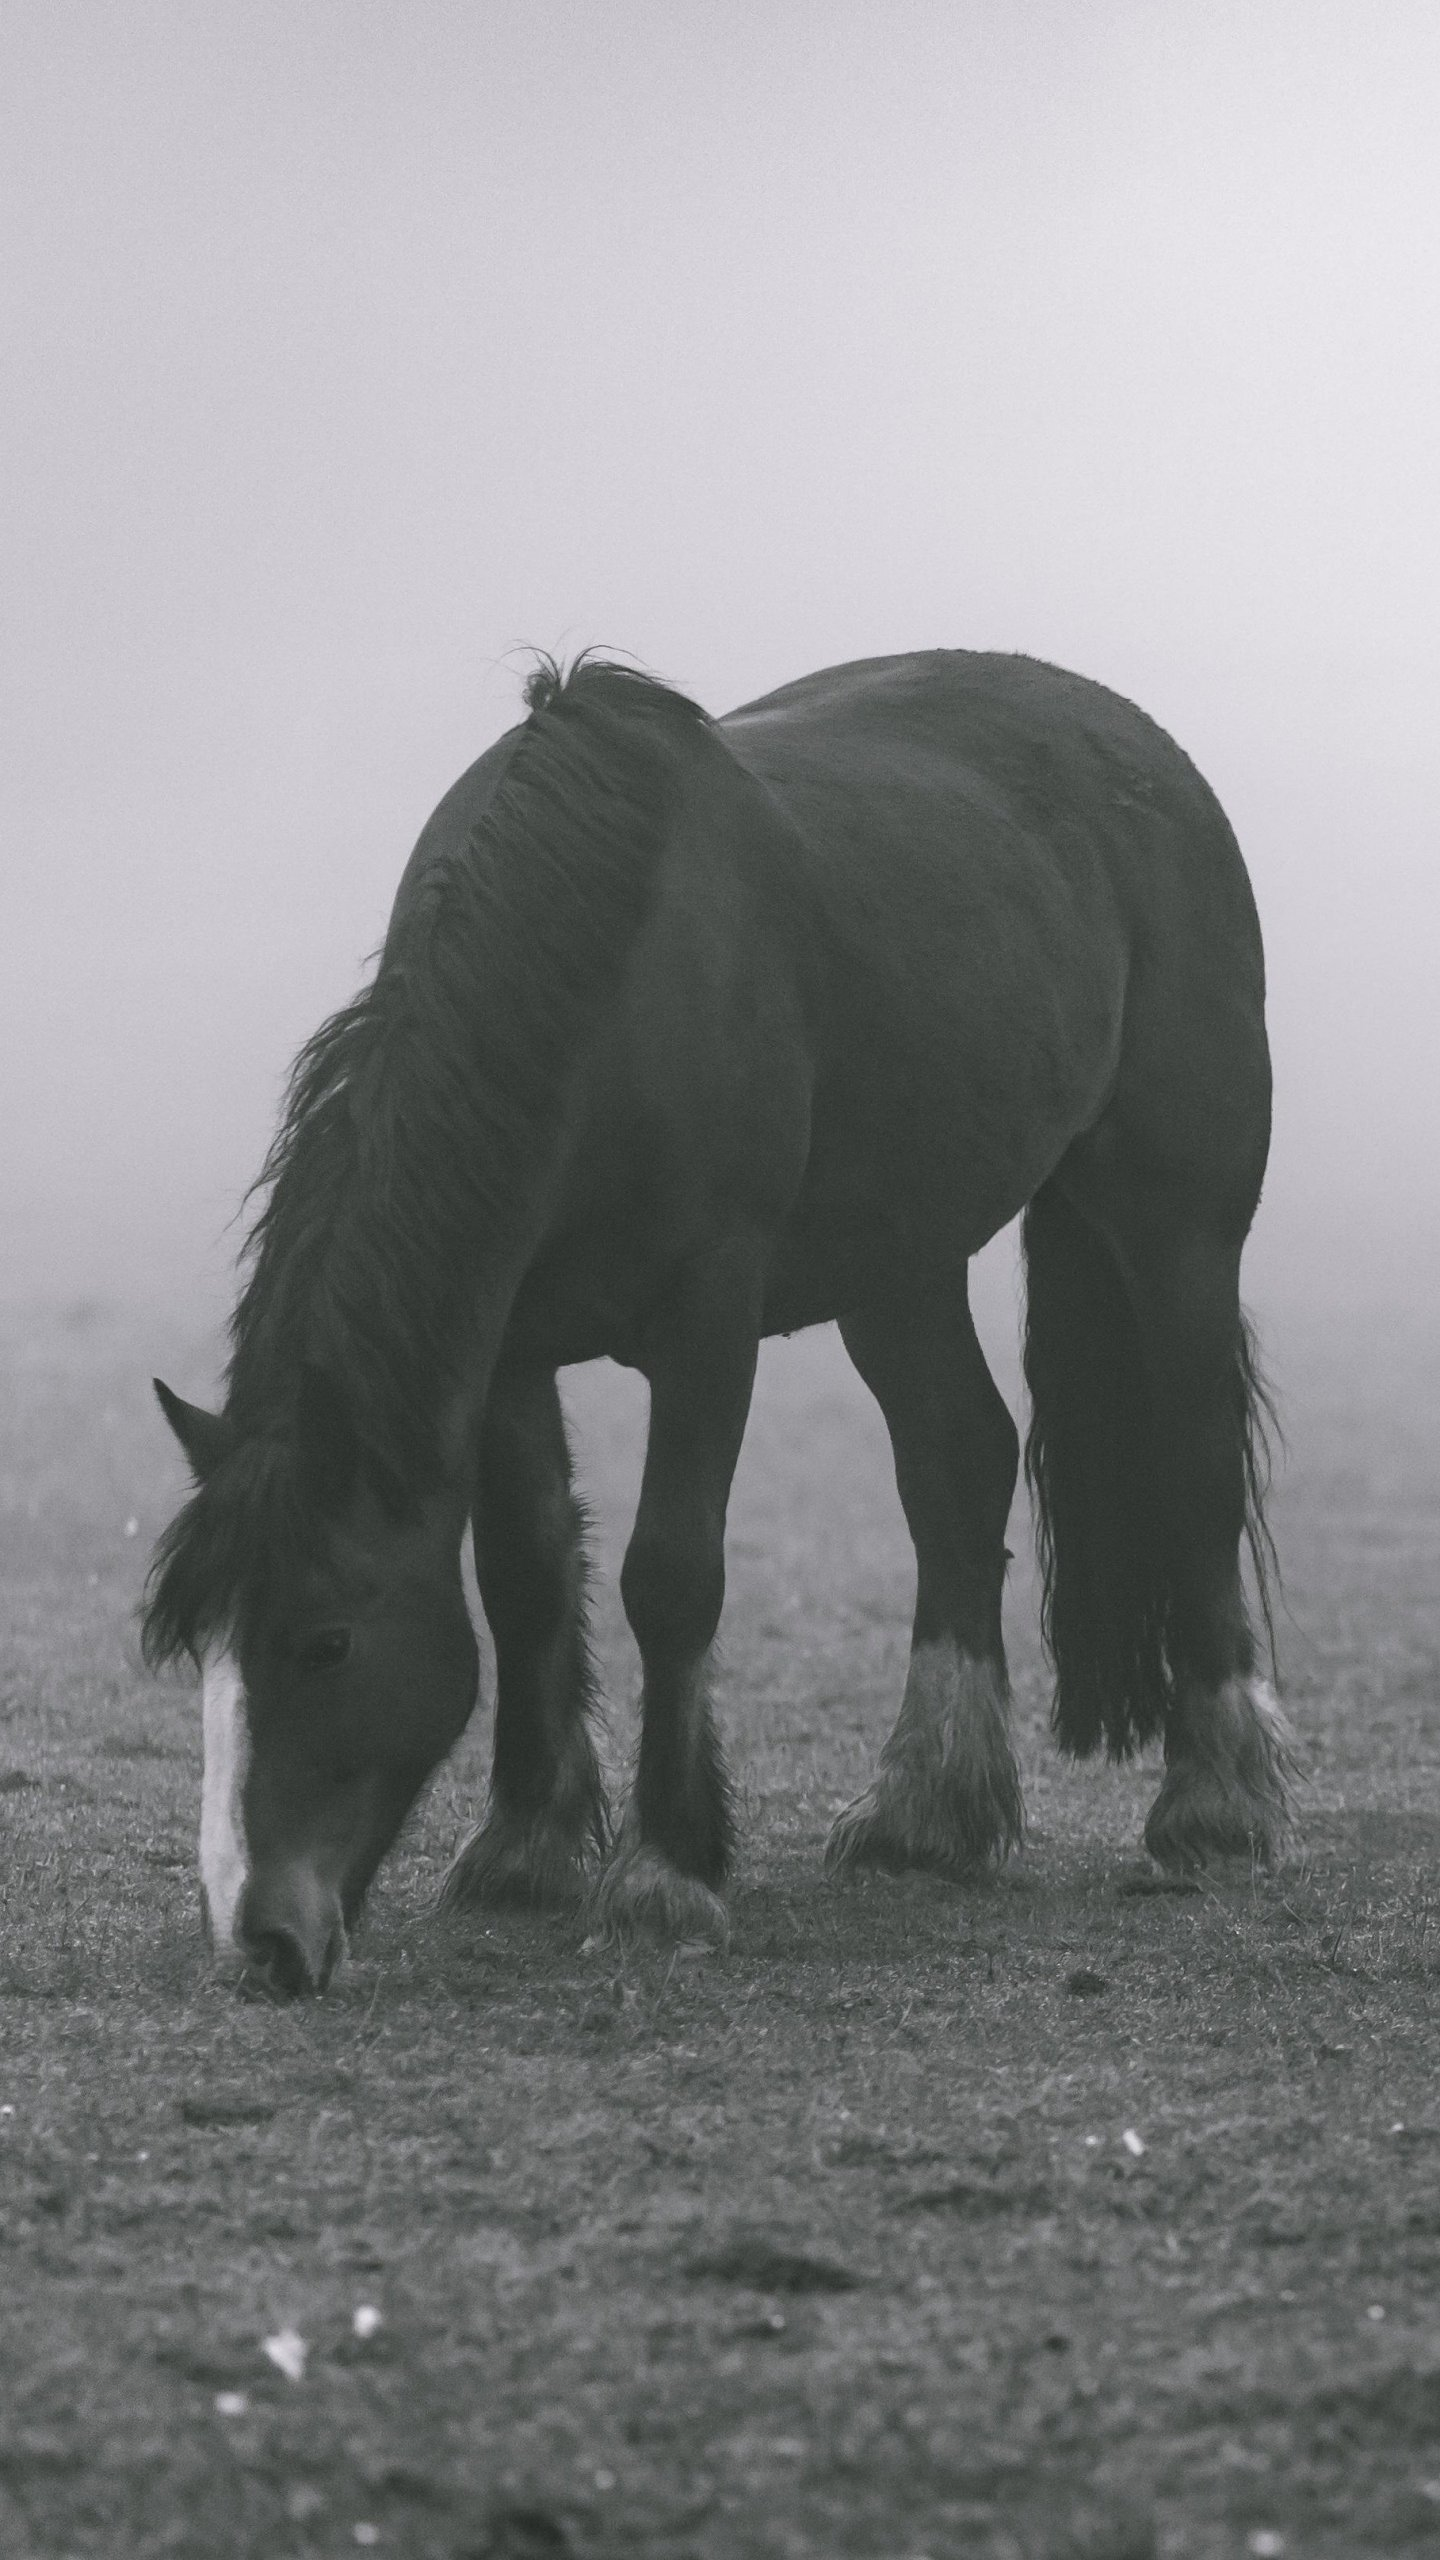 Horse In Fog Wallpaper Iphone Android Desktop Backgrounds